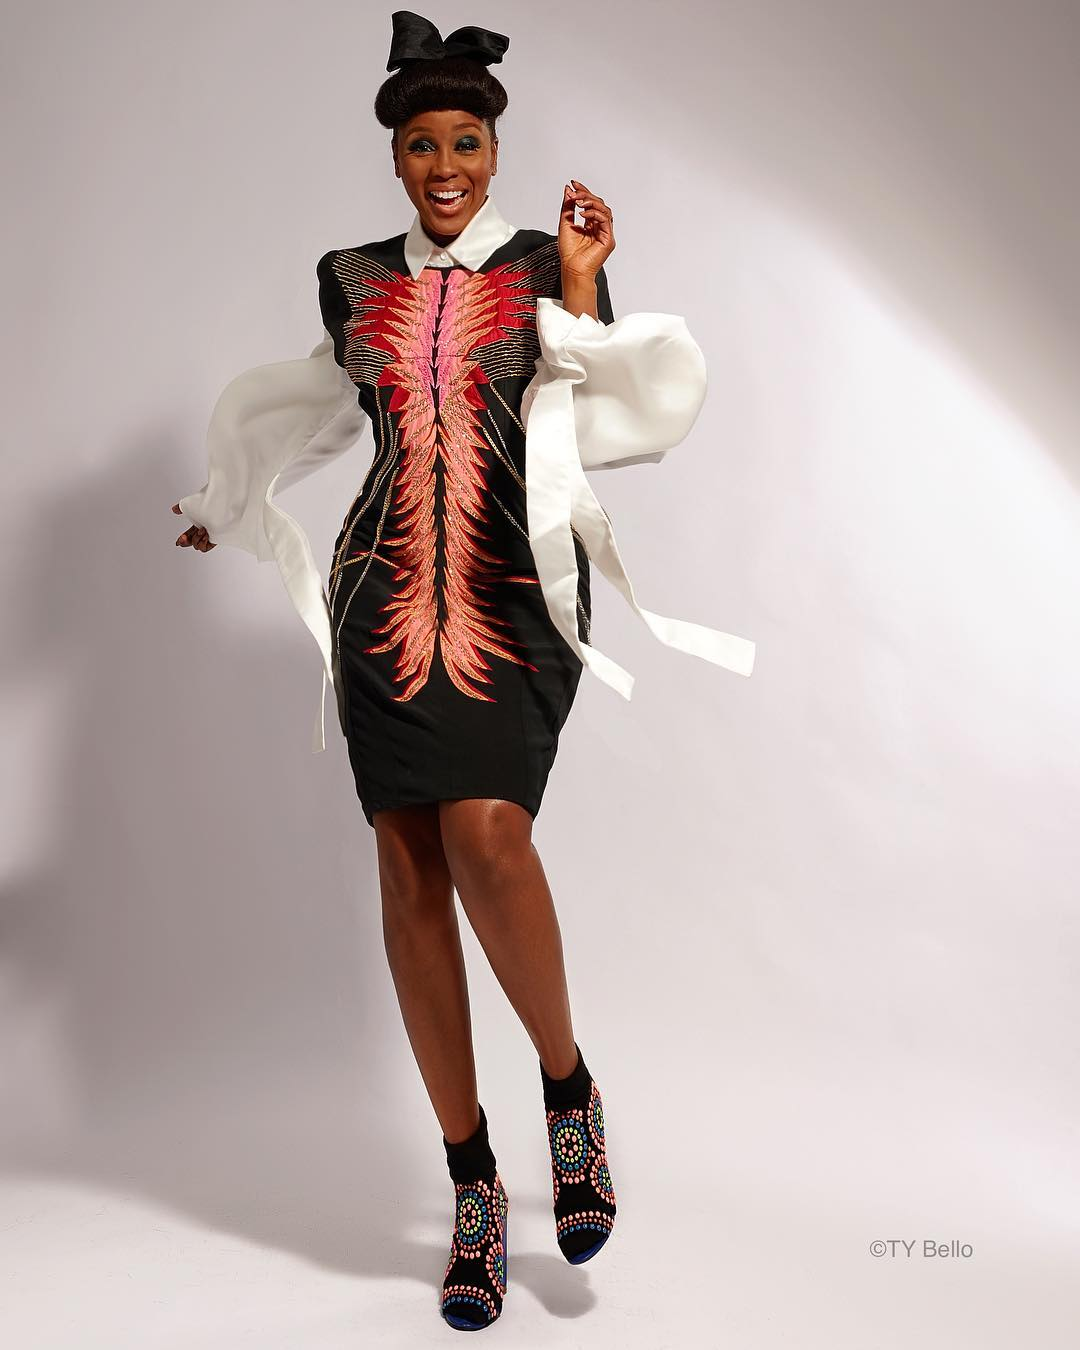 StyleSociety Didi Akinyelure is Stunning in New TY Bello Lensed Images | BN  Style